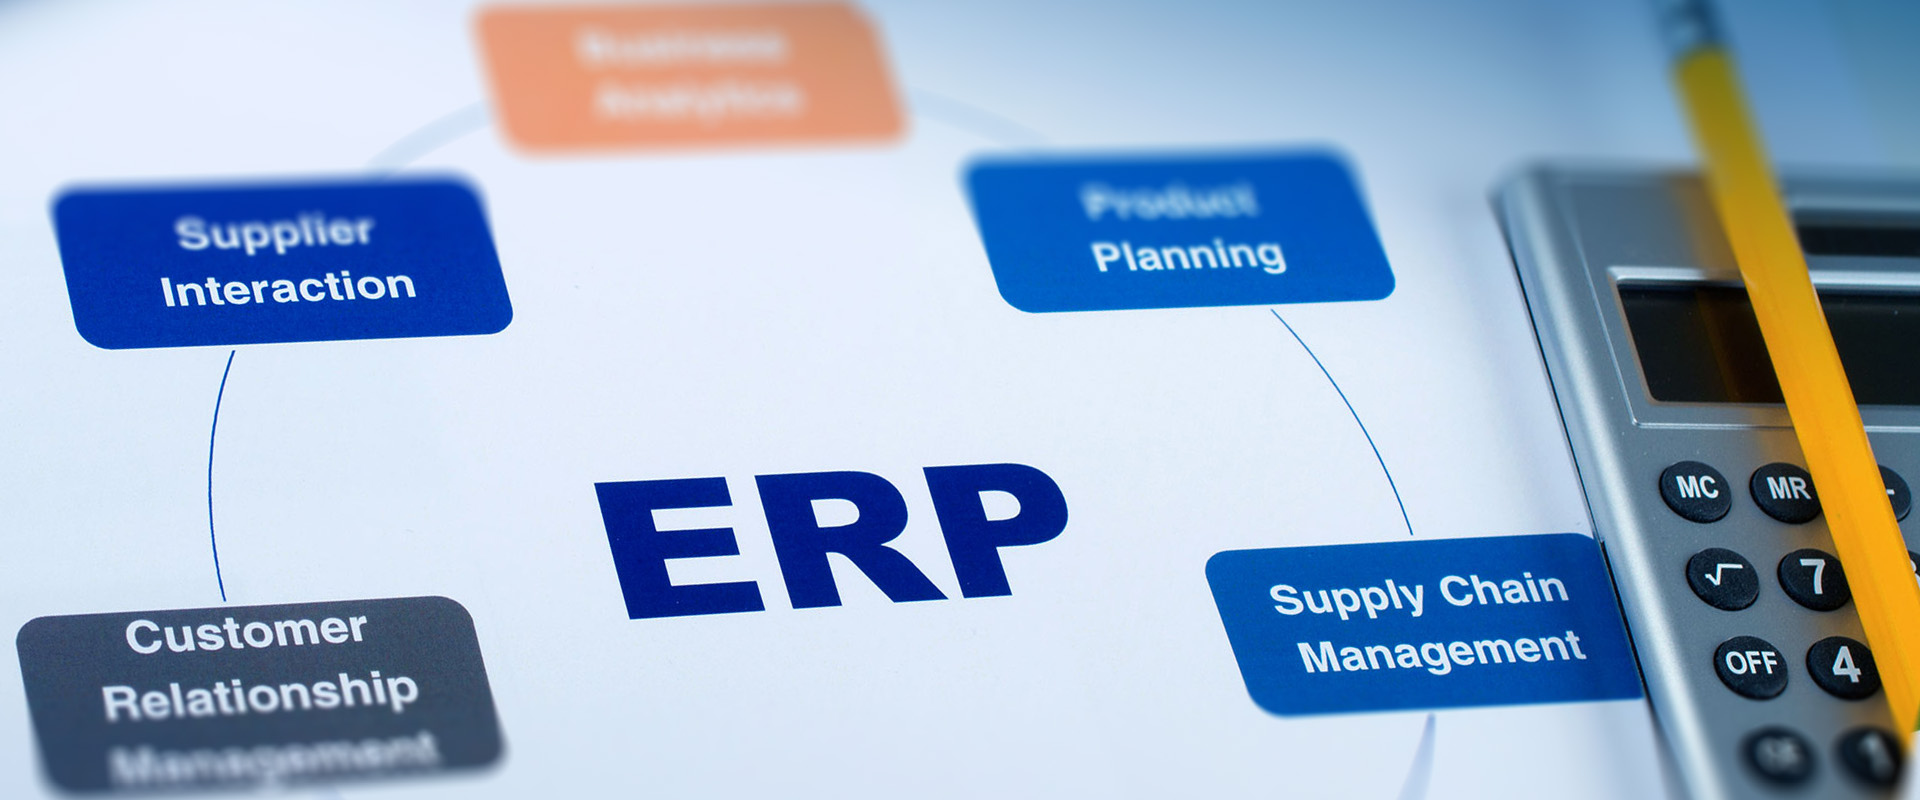 enterprise-resource-planning ERP information